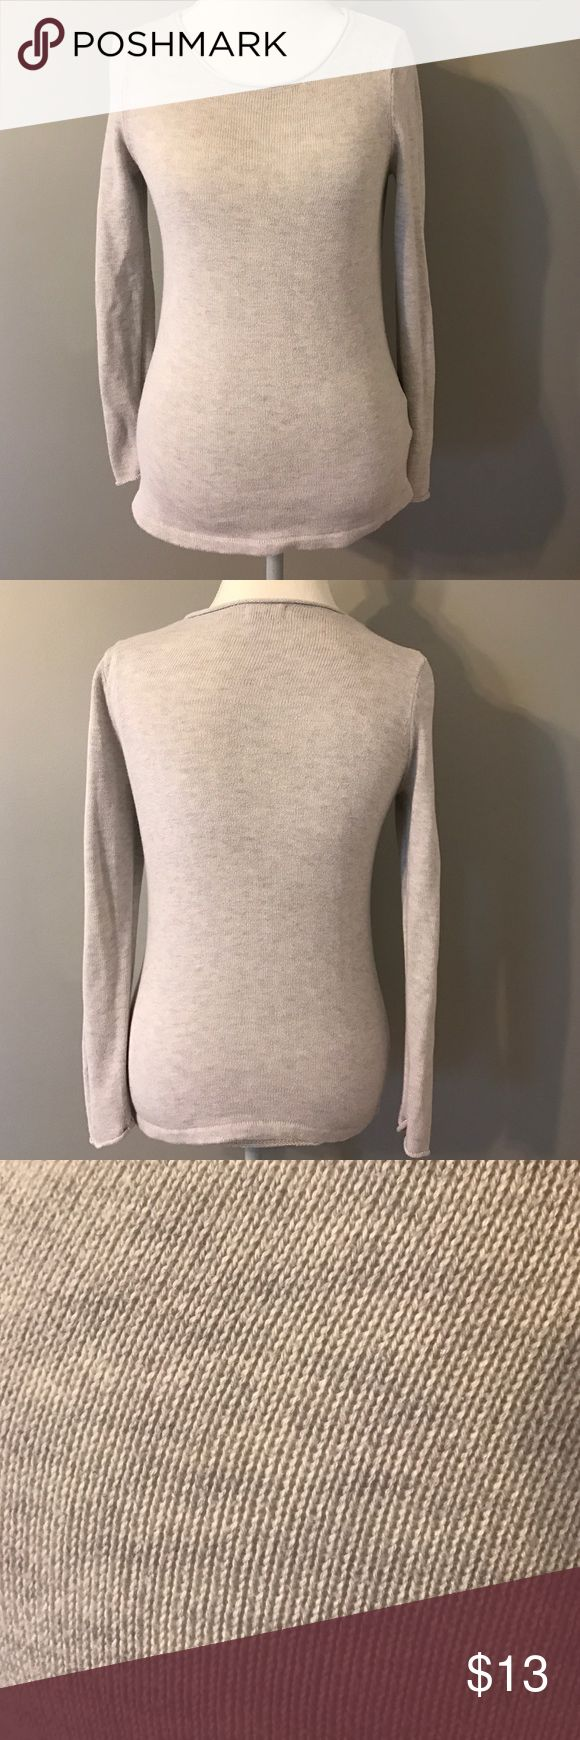 Old Navy Sweater, Size Small Nice sweater from Old Navy. Size Small. Old Navy Sweaters